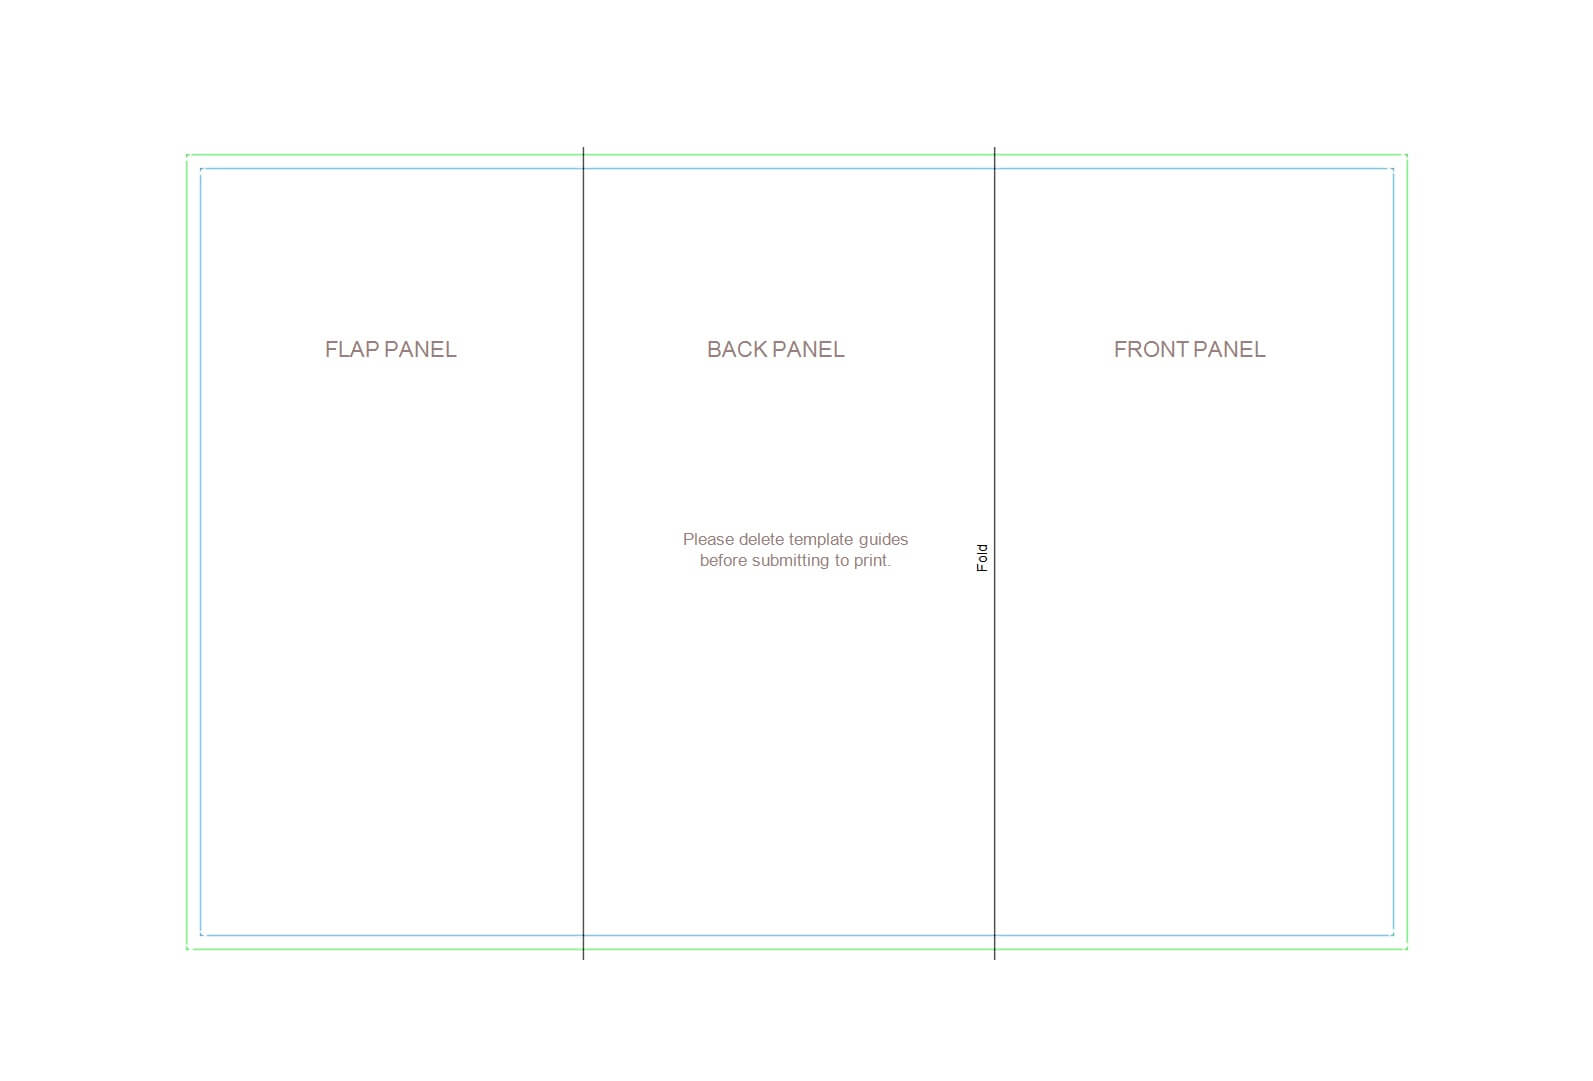 50 Free Pamphlet Templates [Word / Google Docs] ᐅ Template Lab Pertaining To Brochure Templates Google Docs